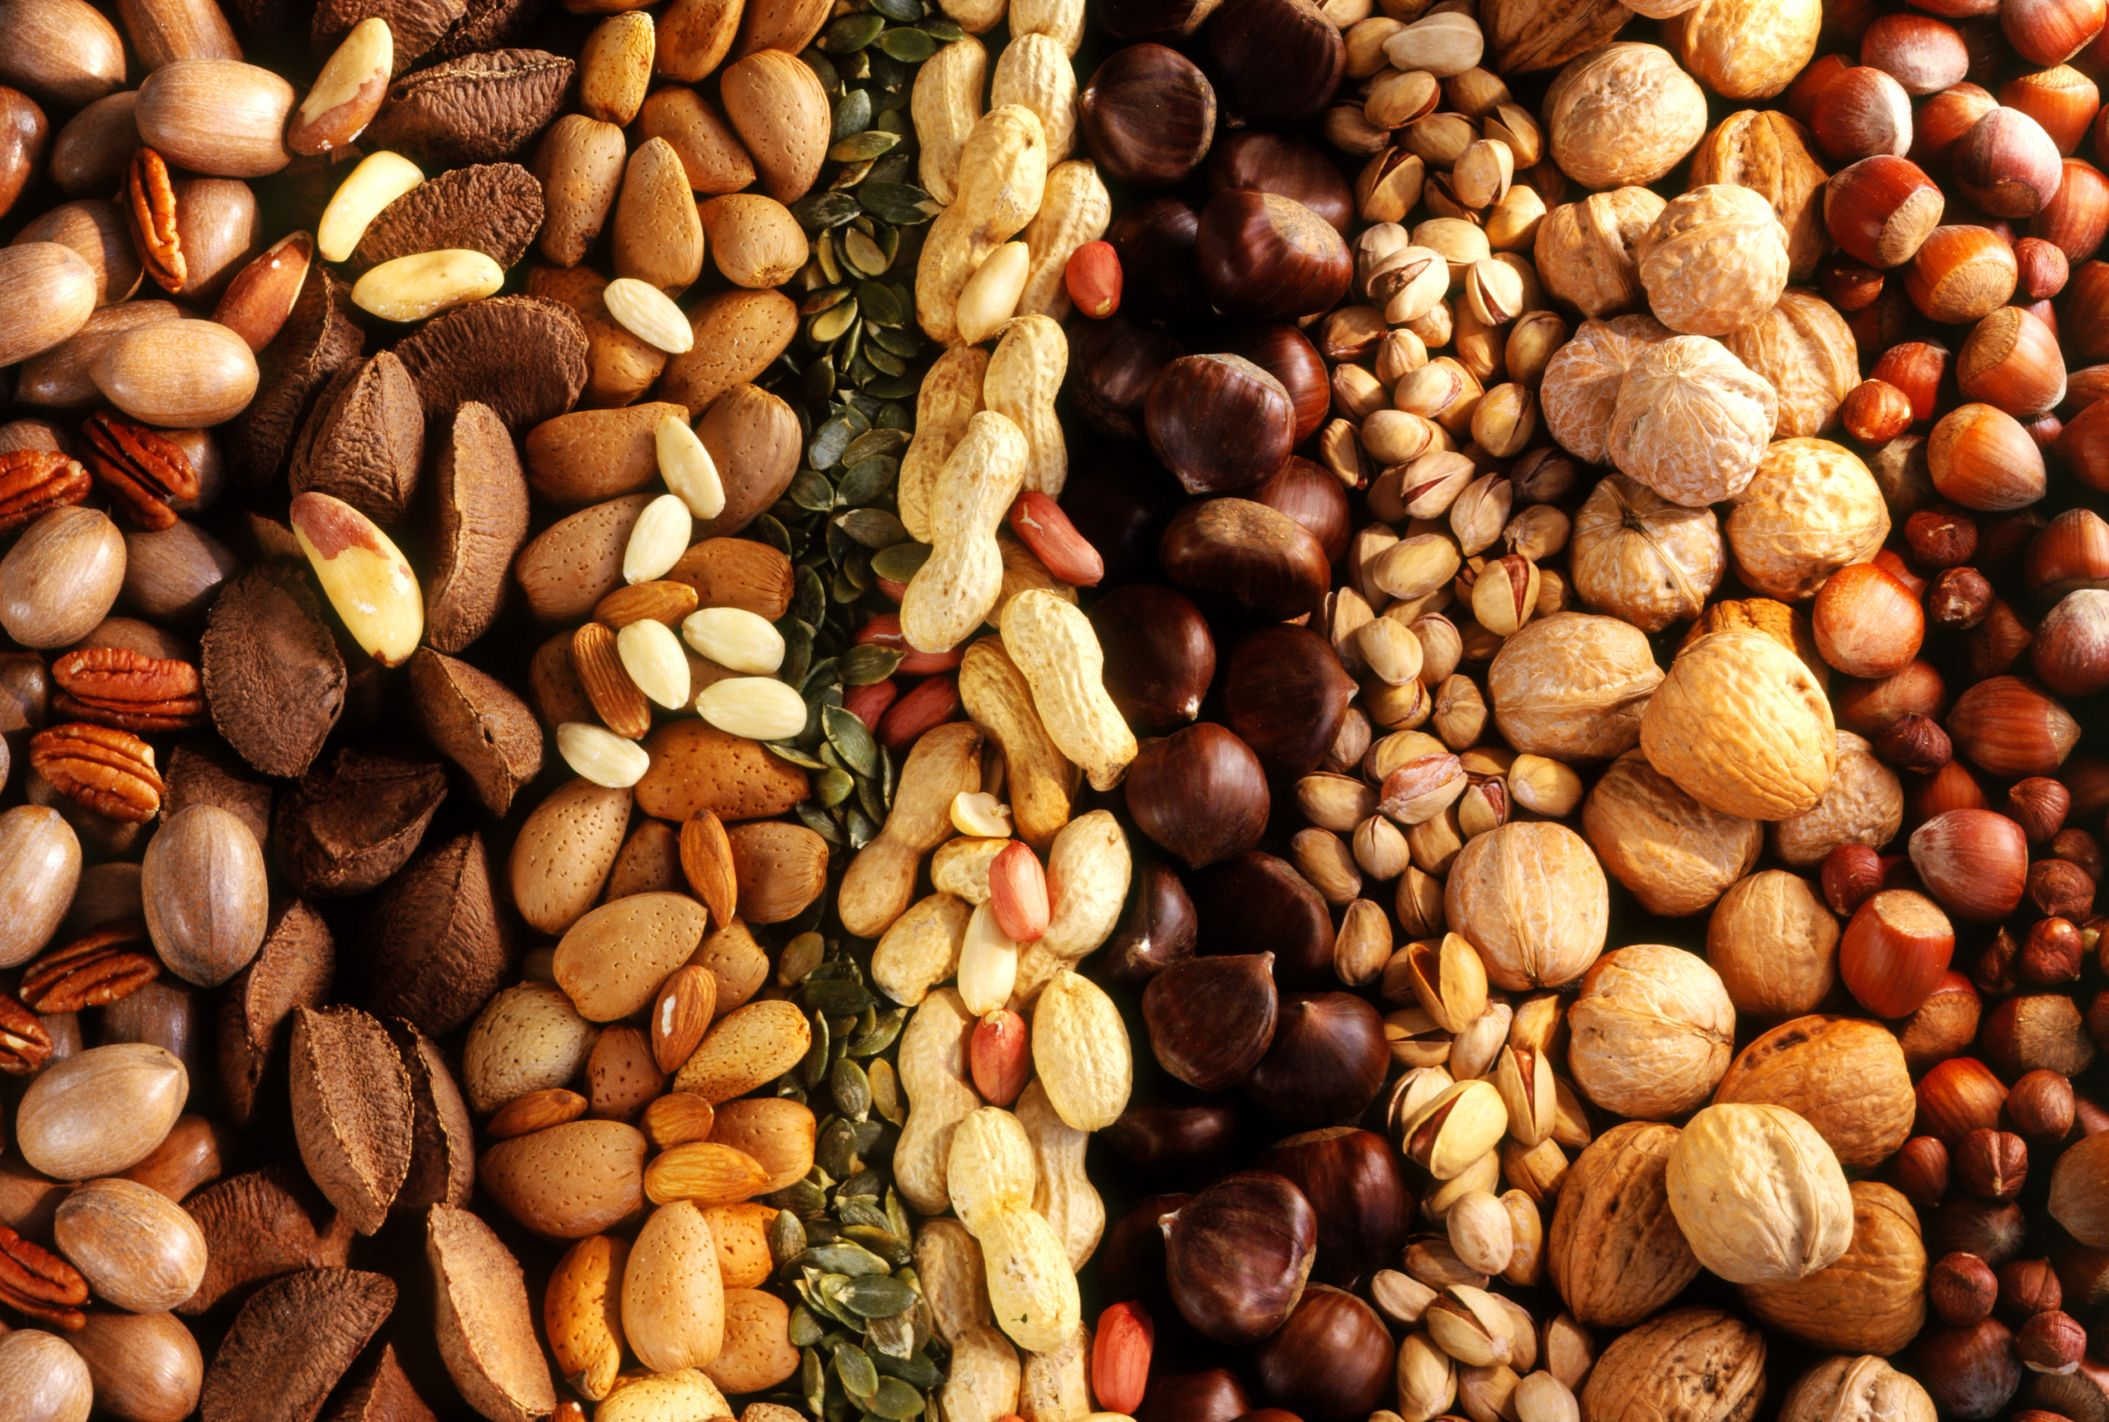 Types of Nuts | What Nuts are Good for You?